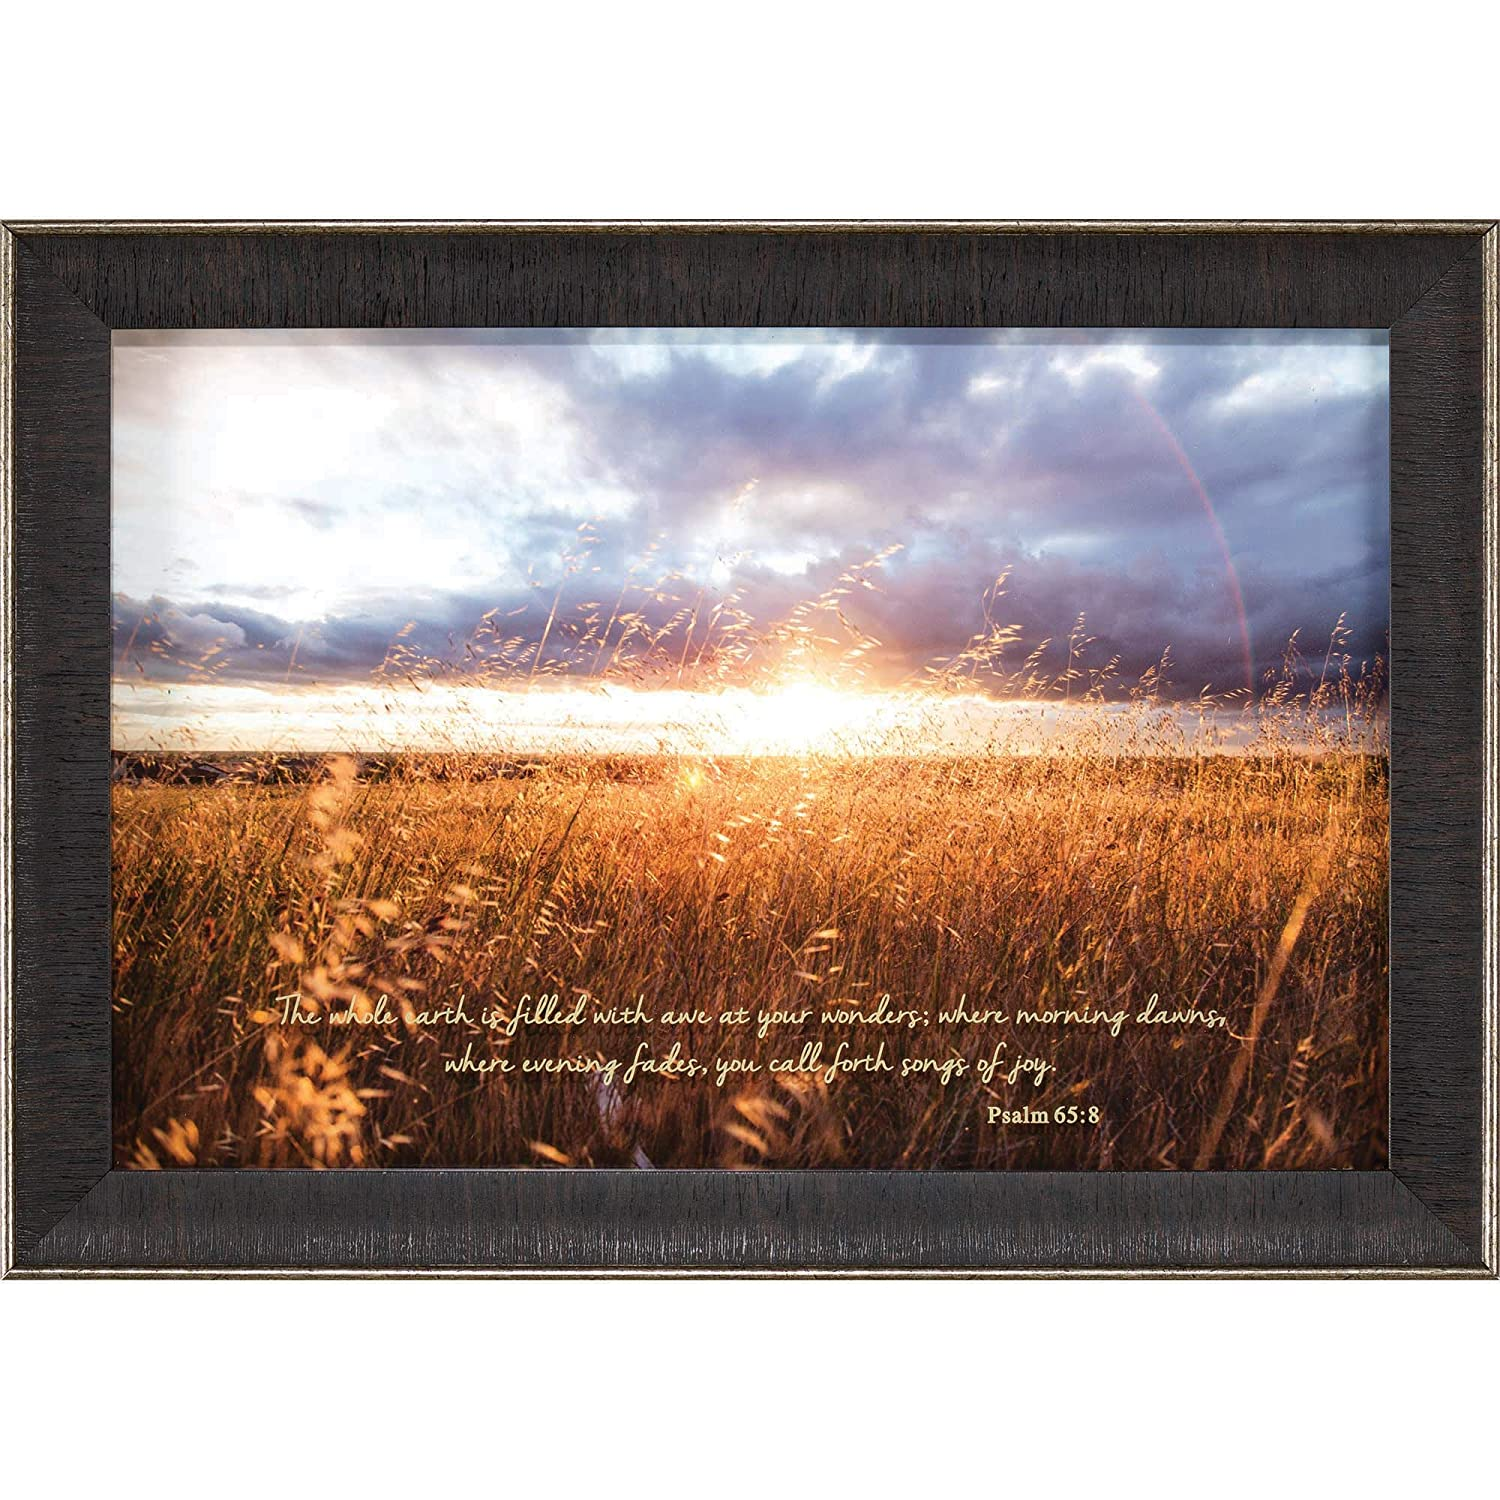 Dicksons Earth Filled with Awe Psalm 65:8 Sunrise Field 14 x 20 Wood Framed Wall Art